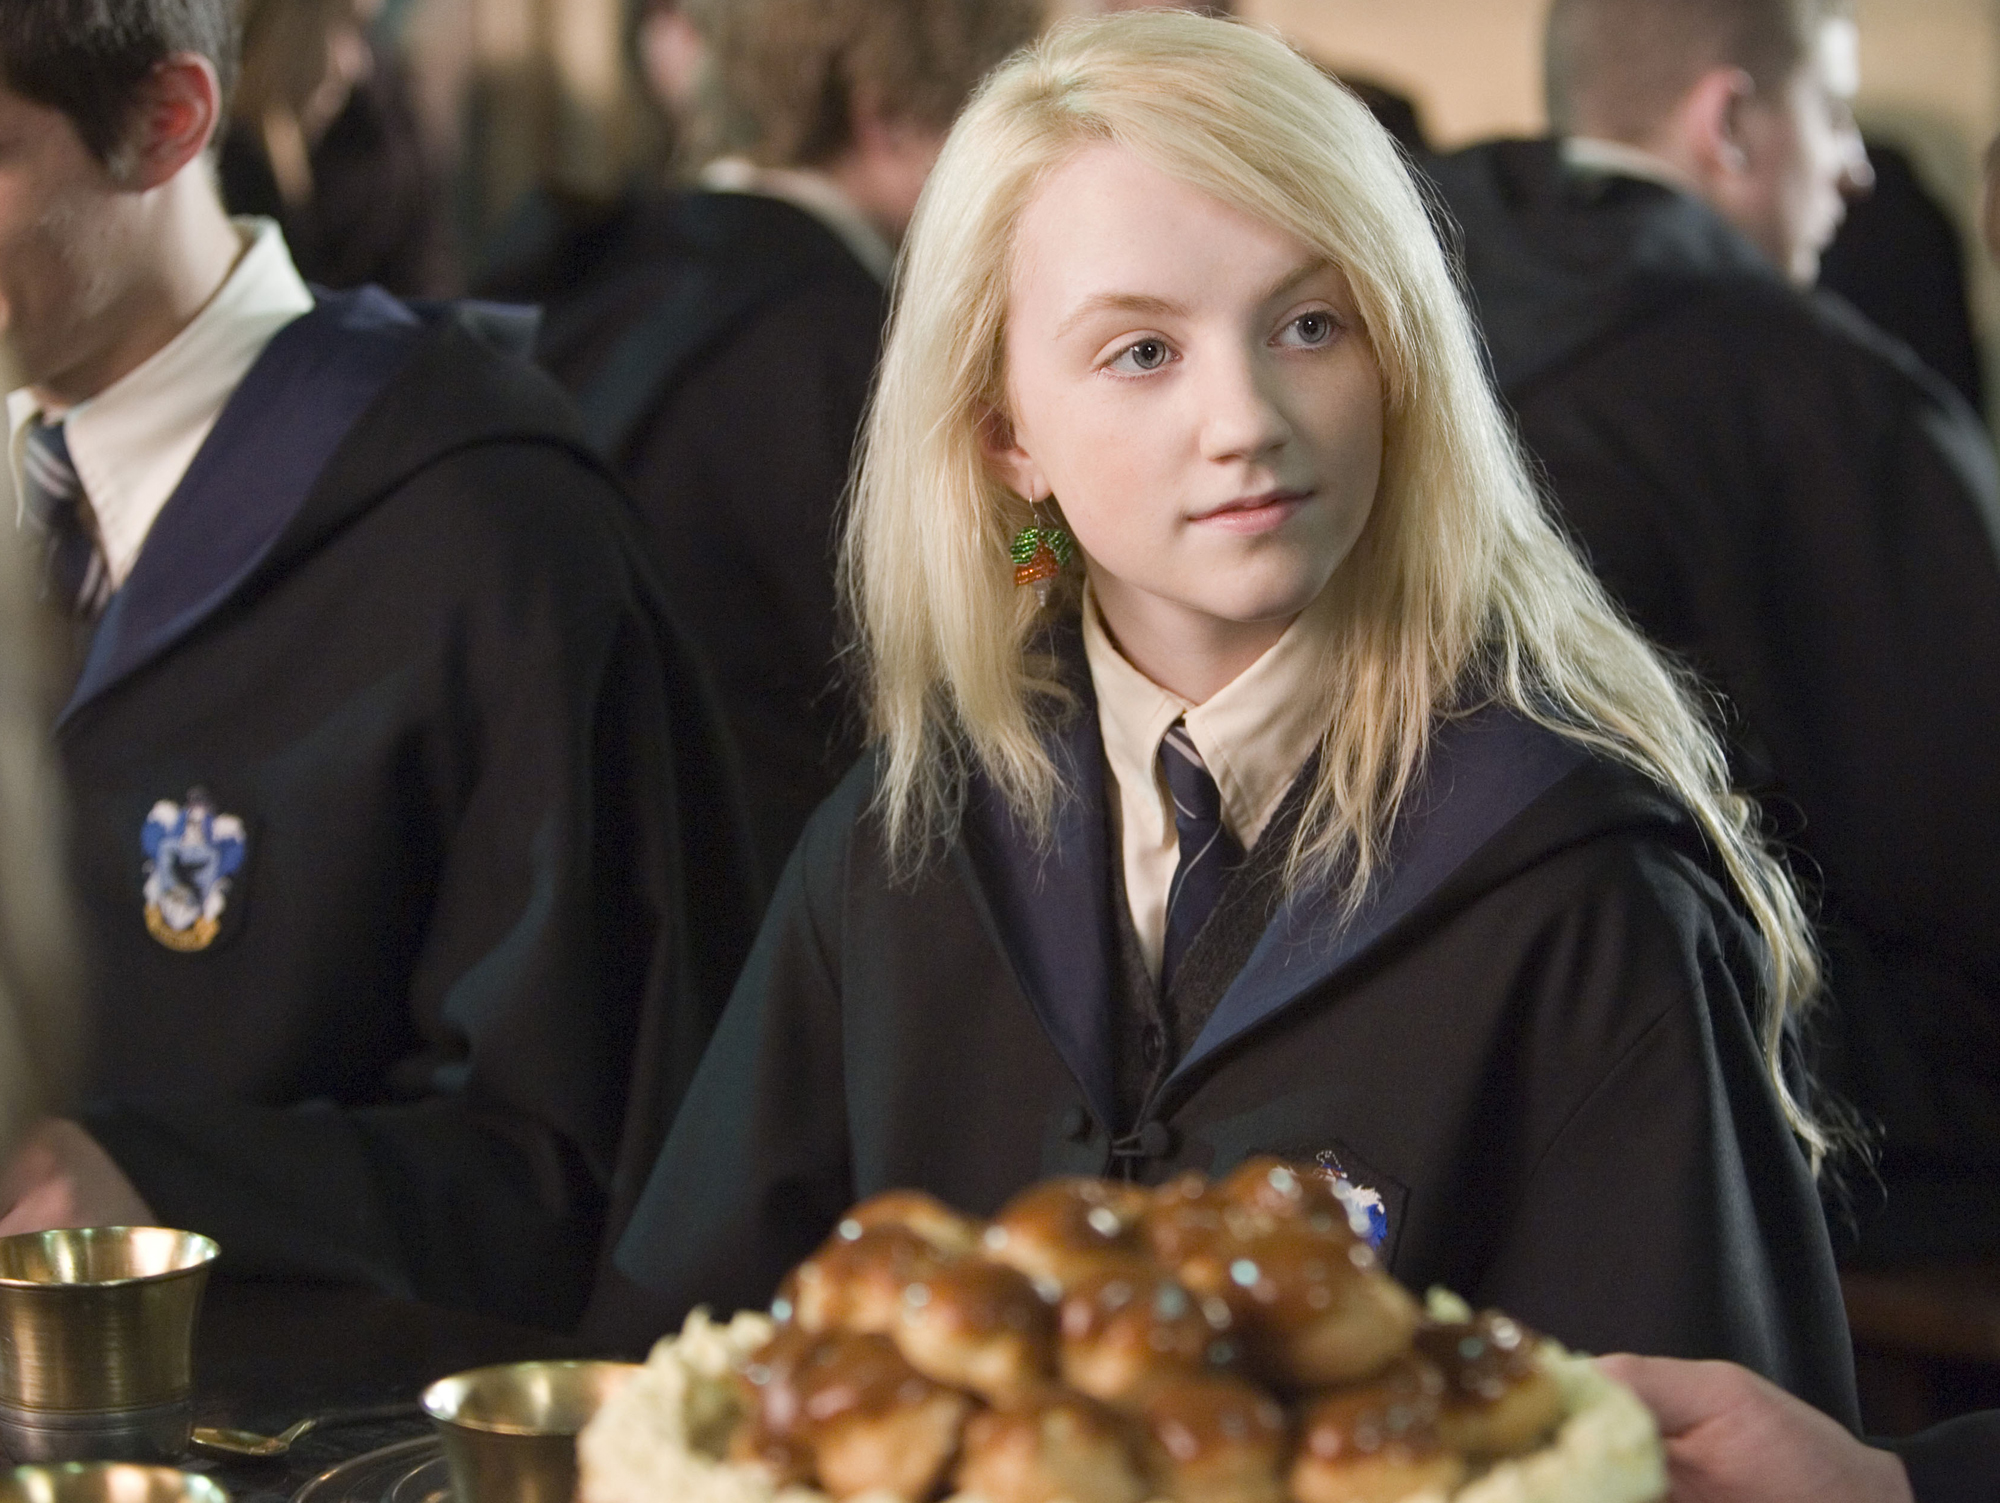 HARRY POTTER AND THE ORDER OF THE PHOENIX, Evanna Lynch, 2007. ©Warner Bros./courtesy Everett Collec